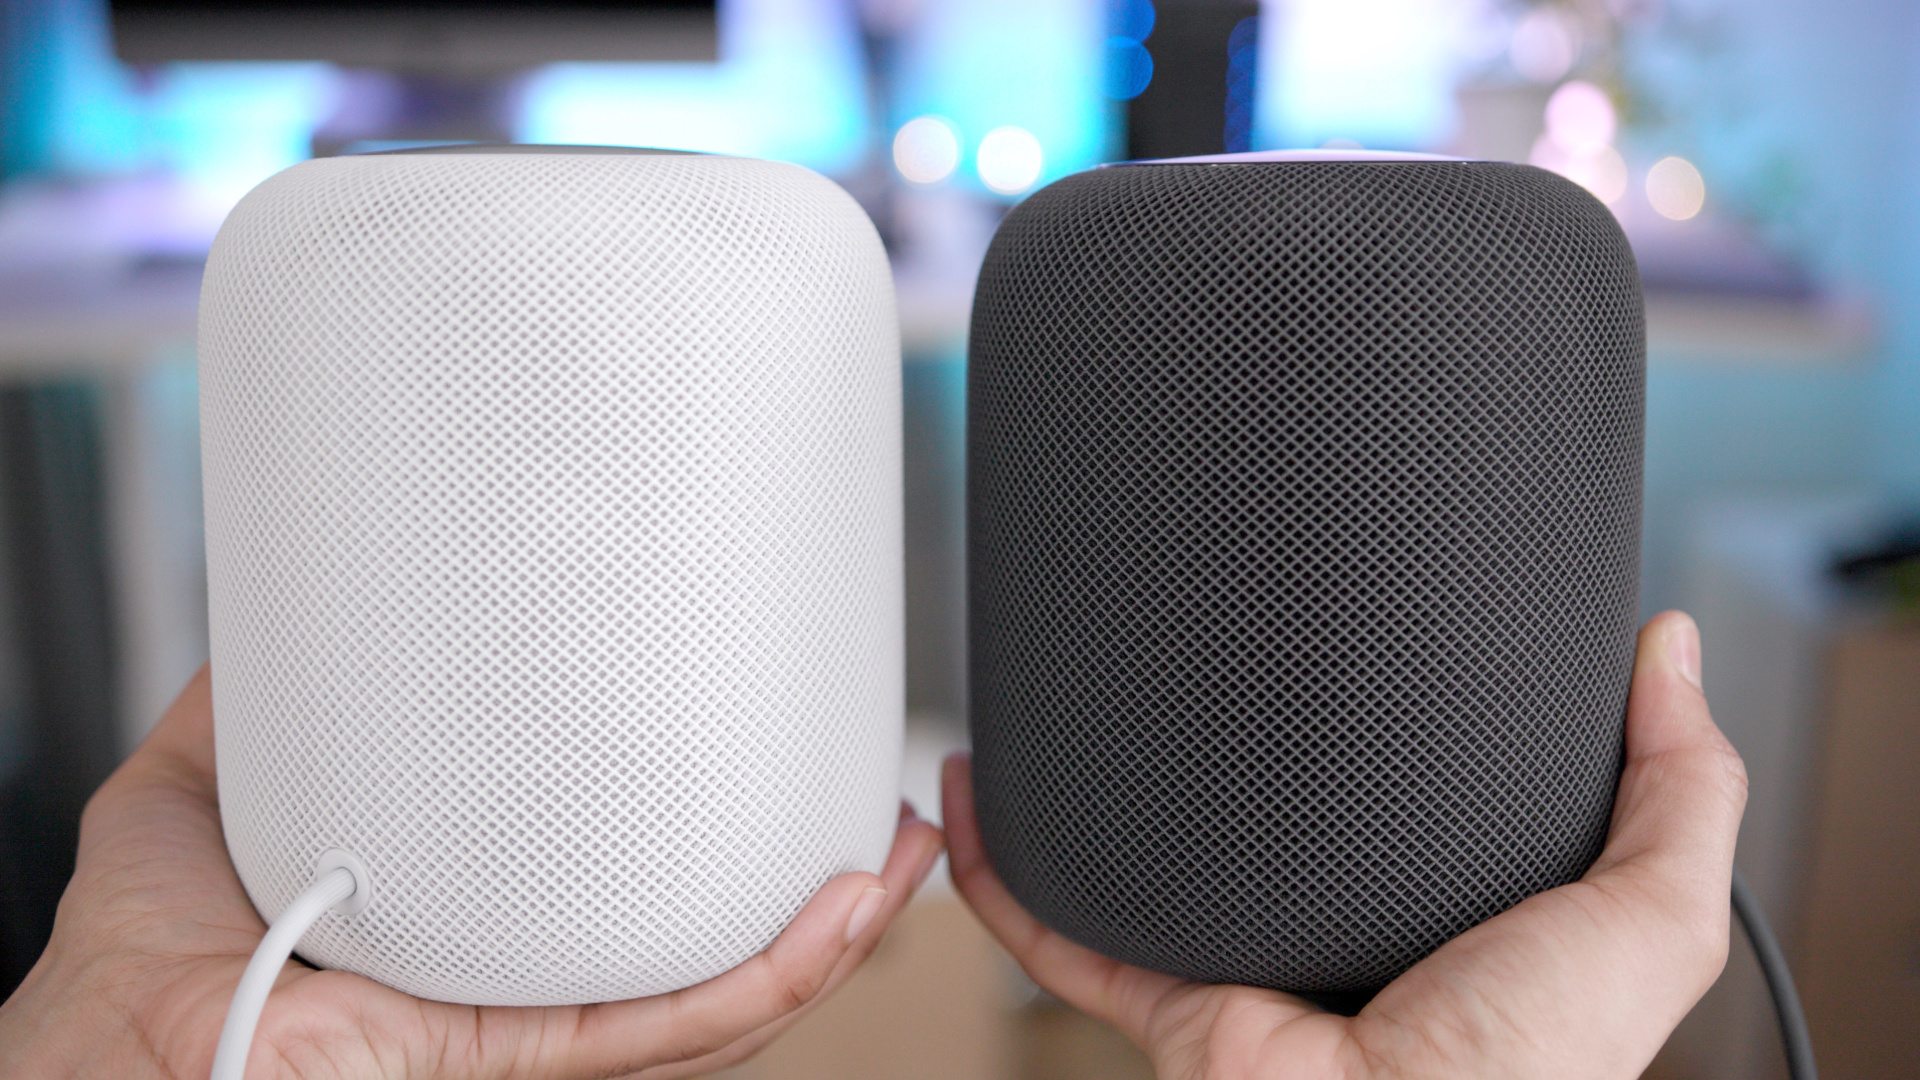 HomePod hands-on: The best (and worst) of Apple's new smart speaker [Video]